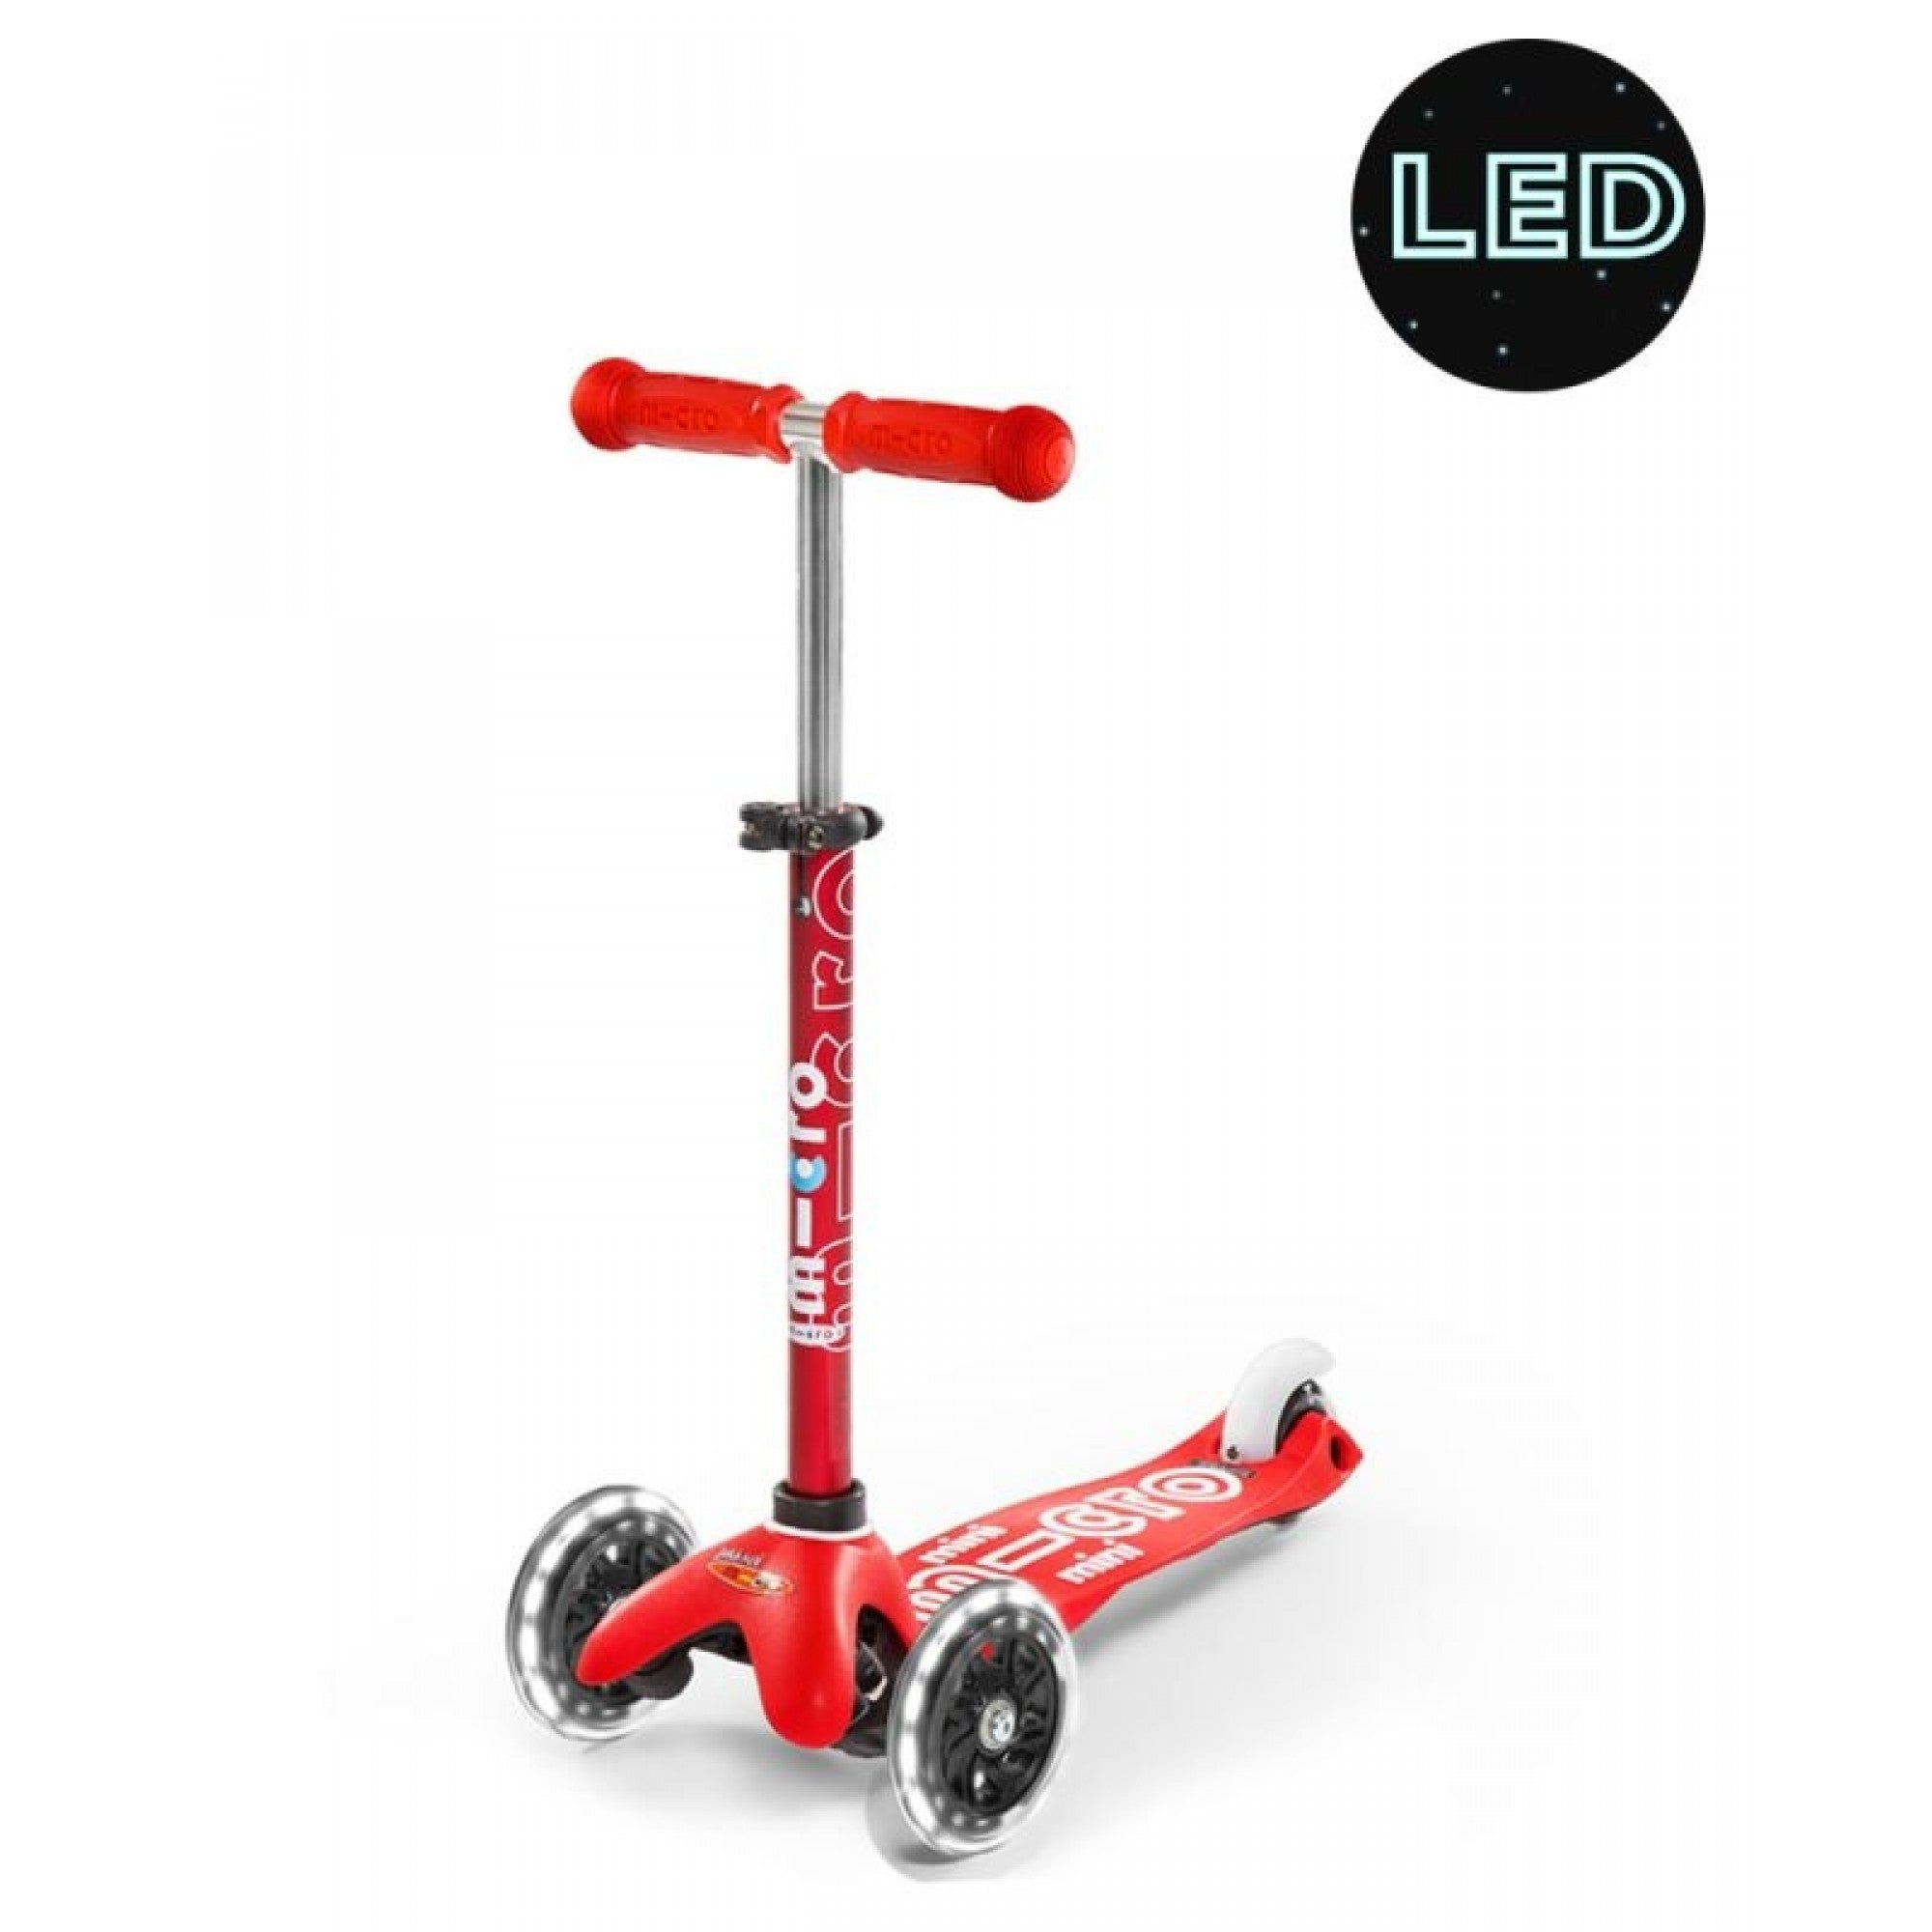 Mini Deluxe LED - Micro Scooters